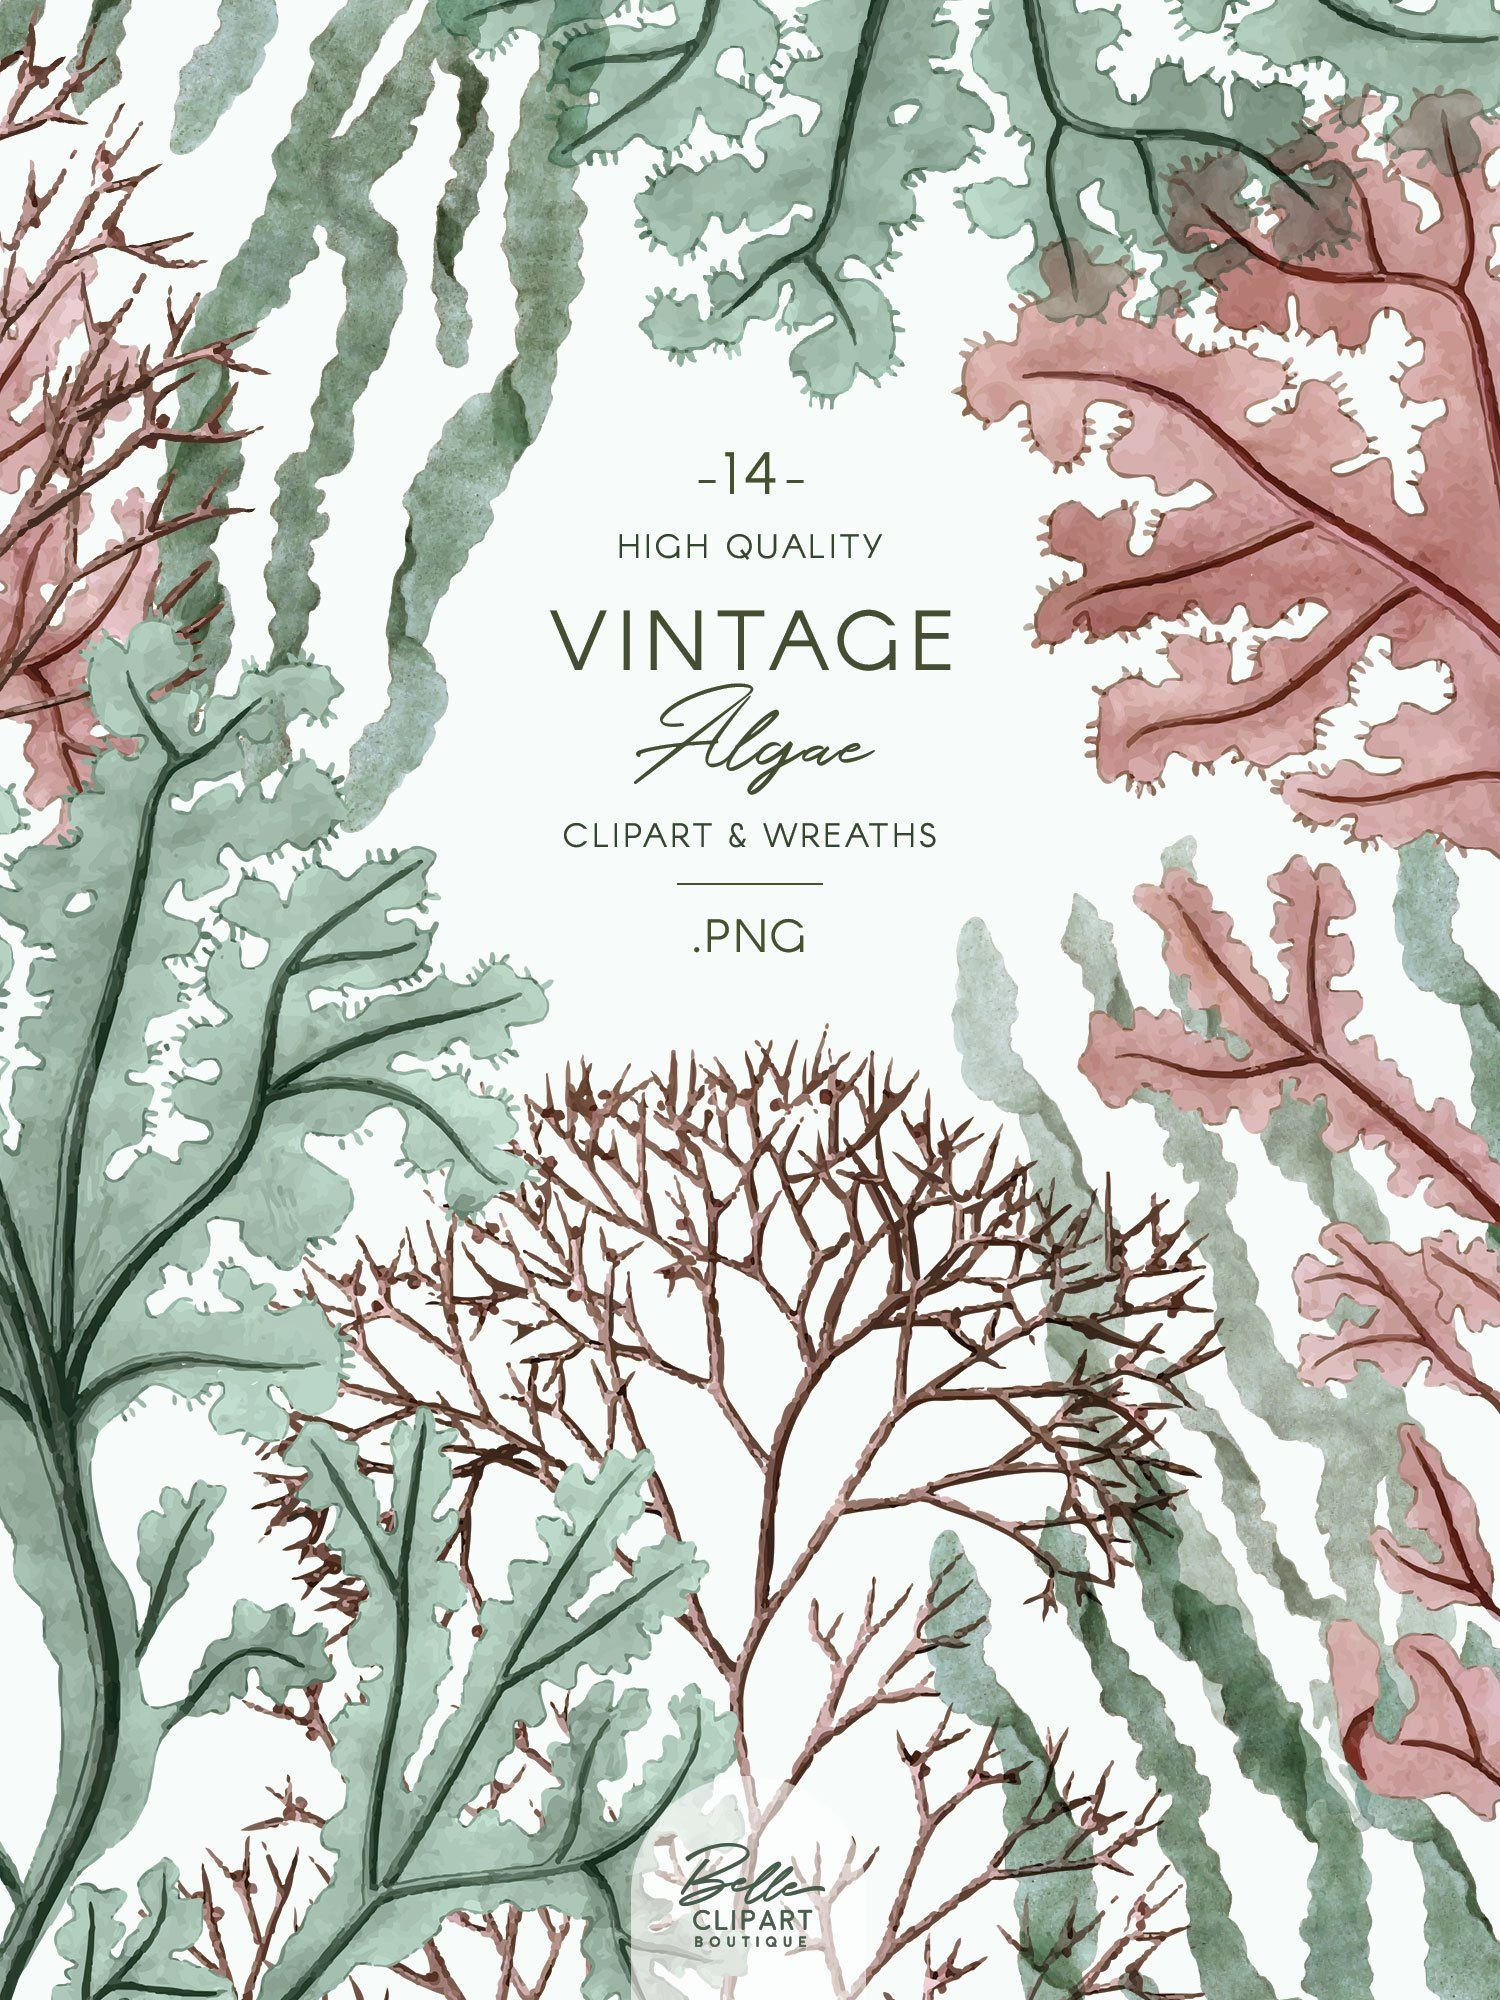 Vintage Algae clip art, watercolor Seaweed illustrations.